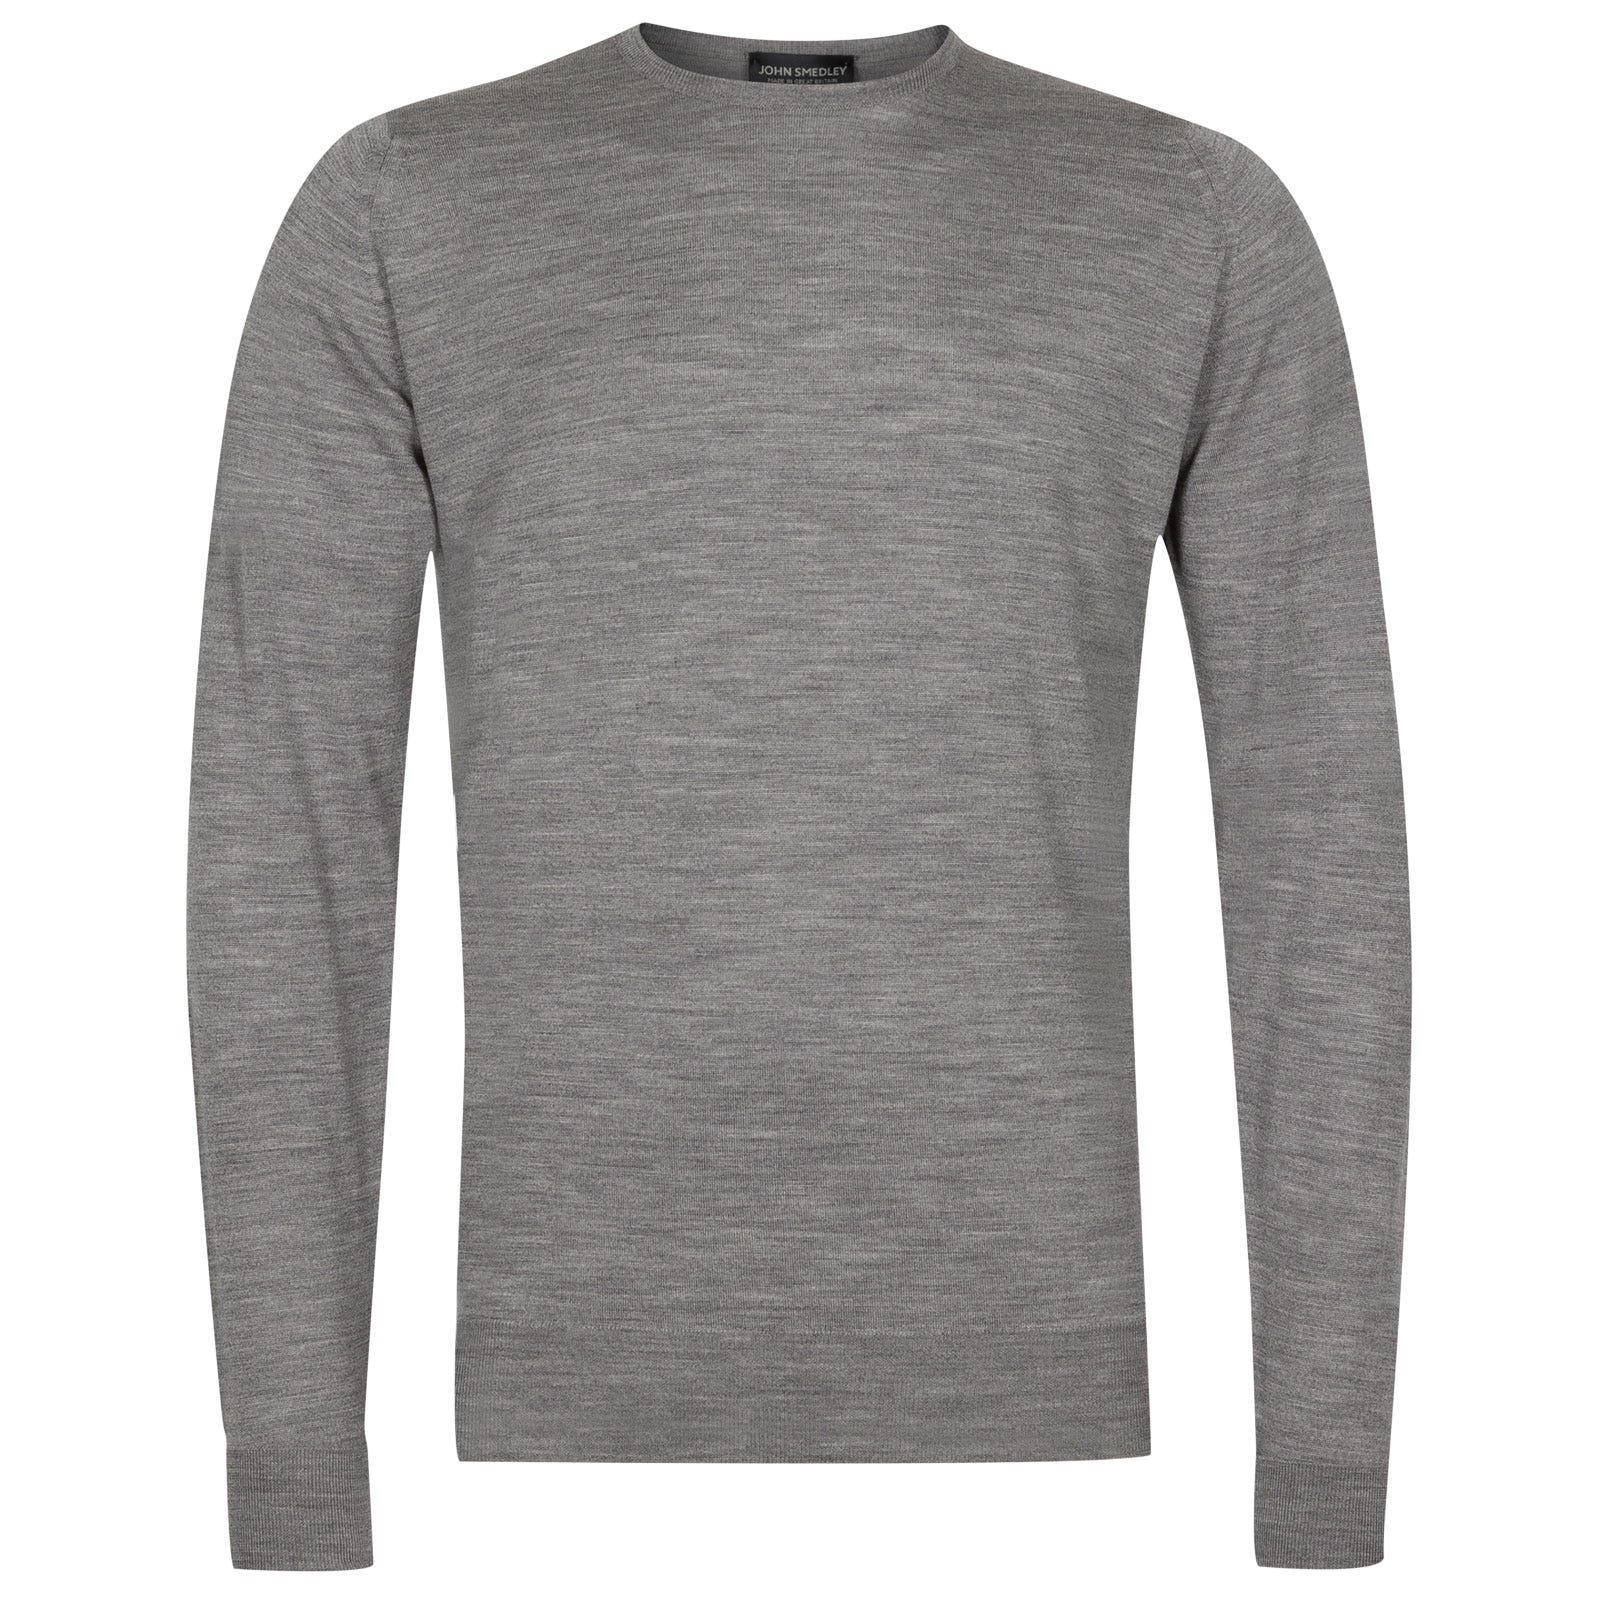 John Smedley marcus Merino Wool Pullover in Silver-M